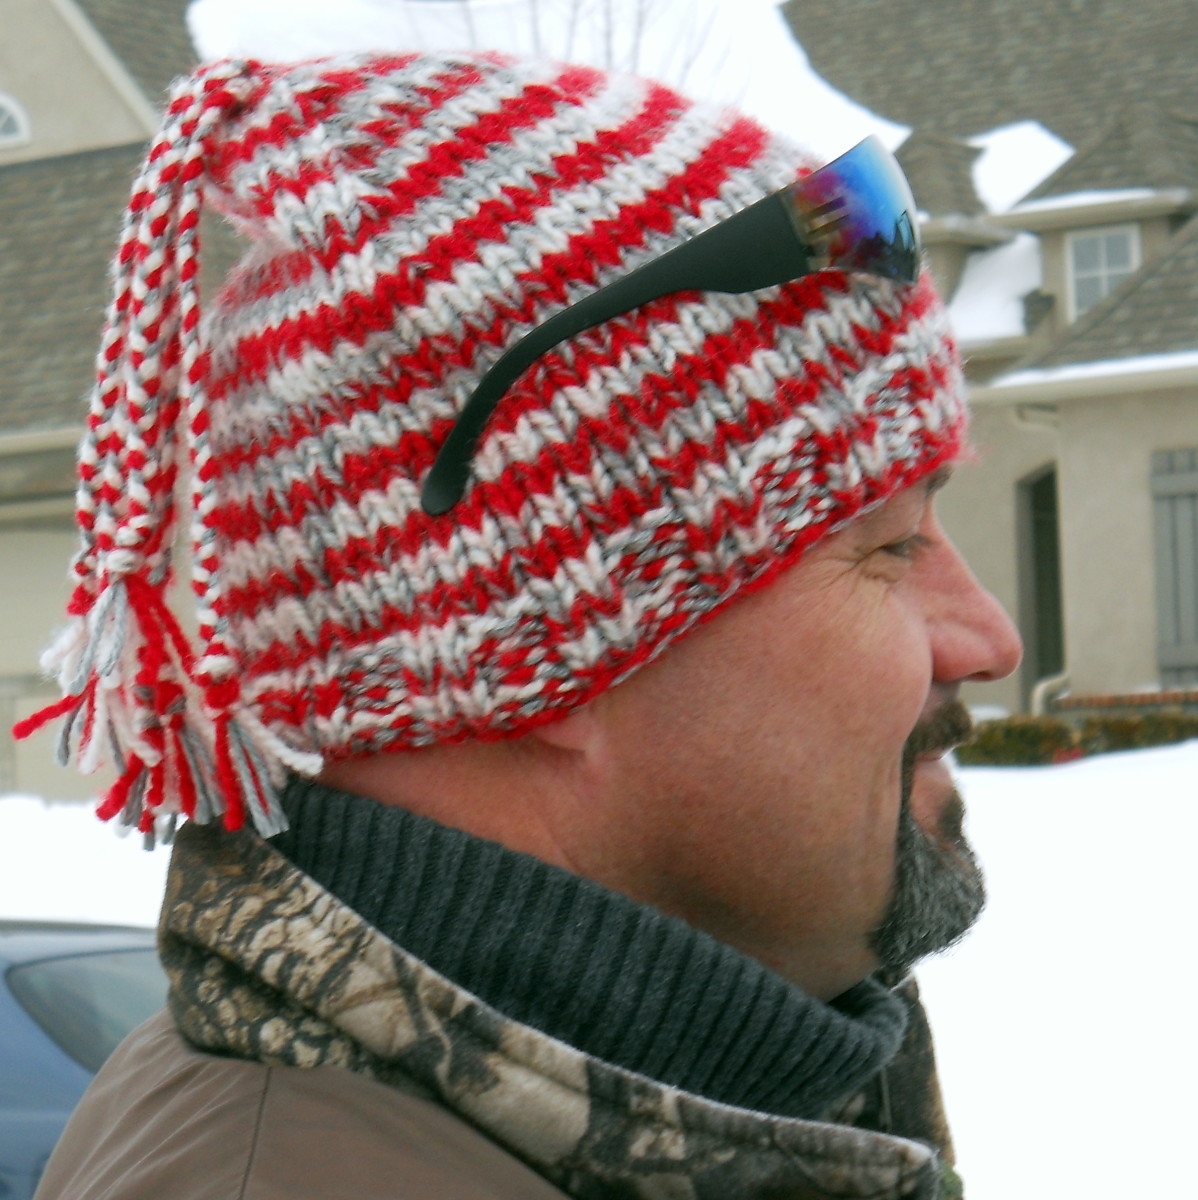 How To Knit An Easy Beanie Hat With Straight Needles Feltmagnet